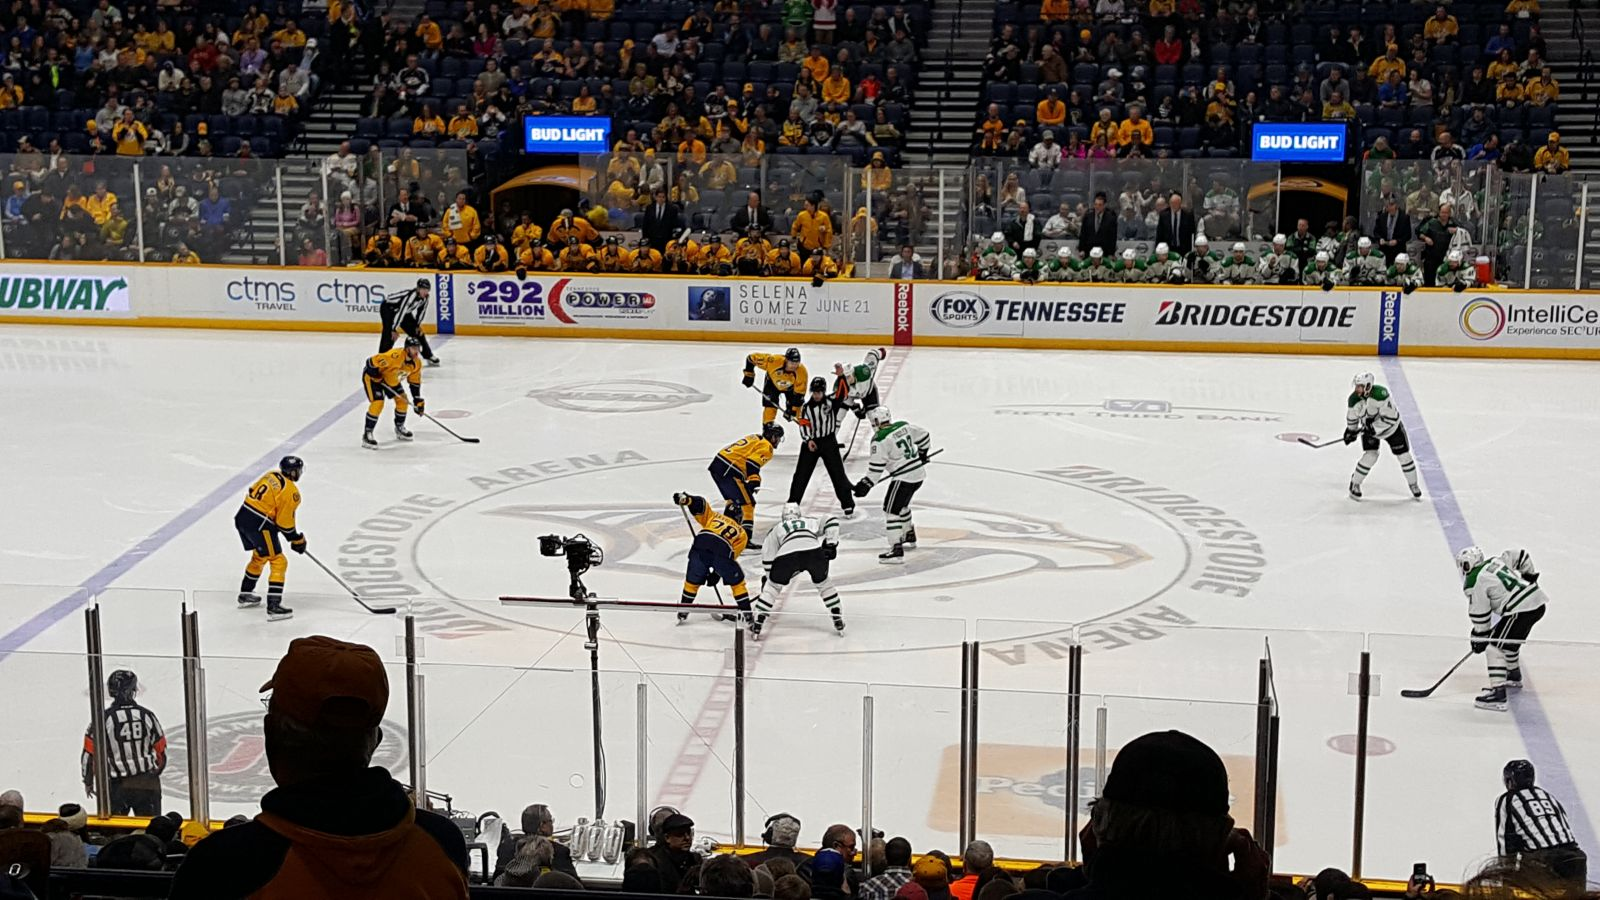 Section 106 seat view